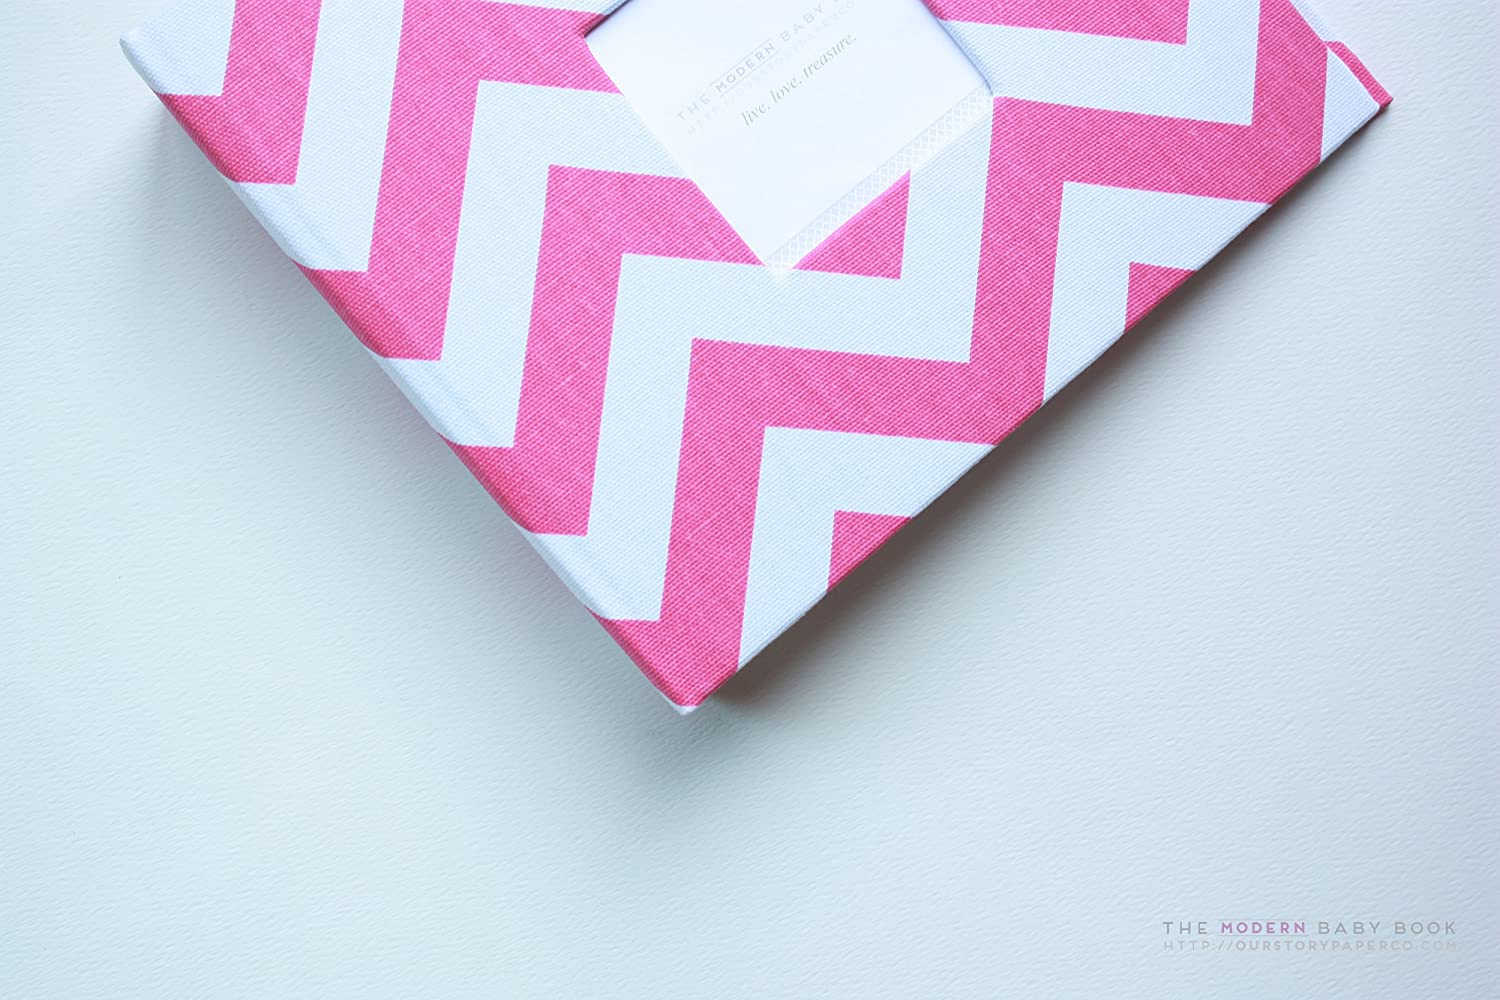 d31516b28 Amazon.com  Hot Pink Chevron Stripe Modern Baby Book  Handmade